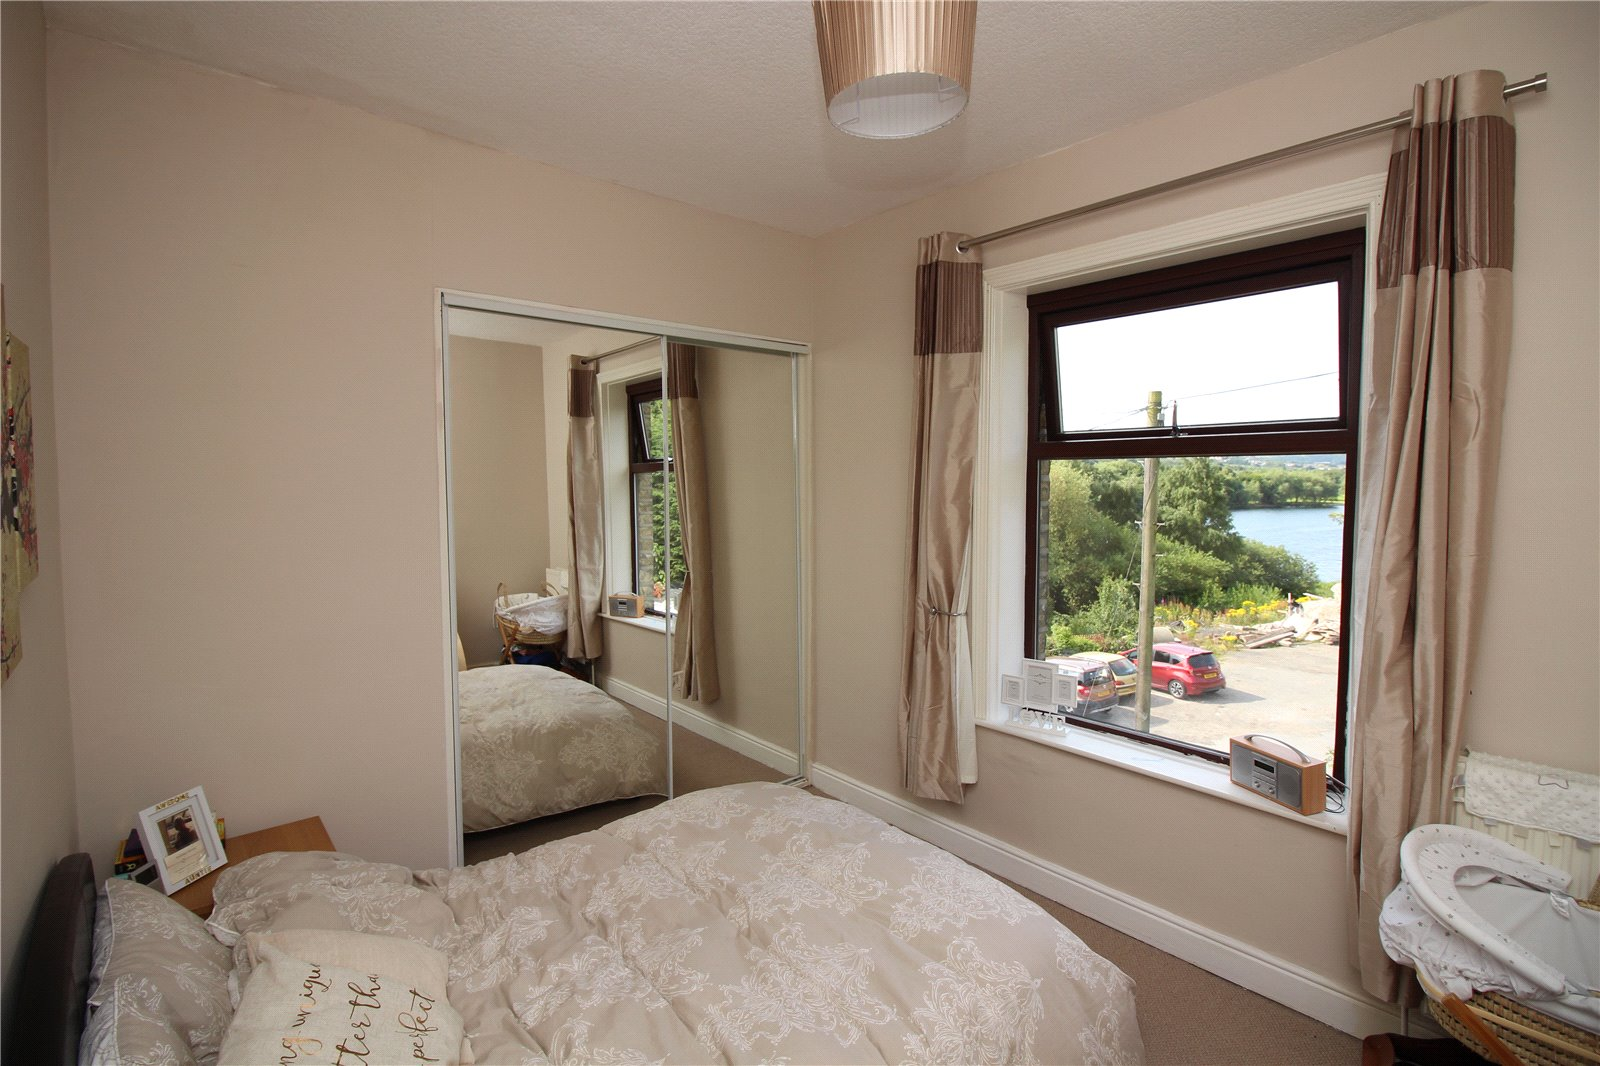 Yorkshire Terrace: Whitegates Brighouse 2 Bedroom House For Sale In Grove